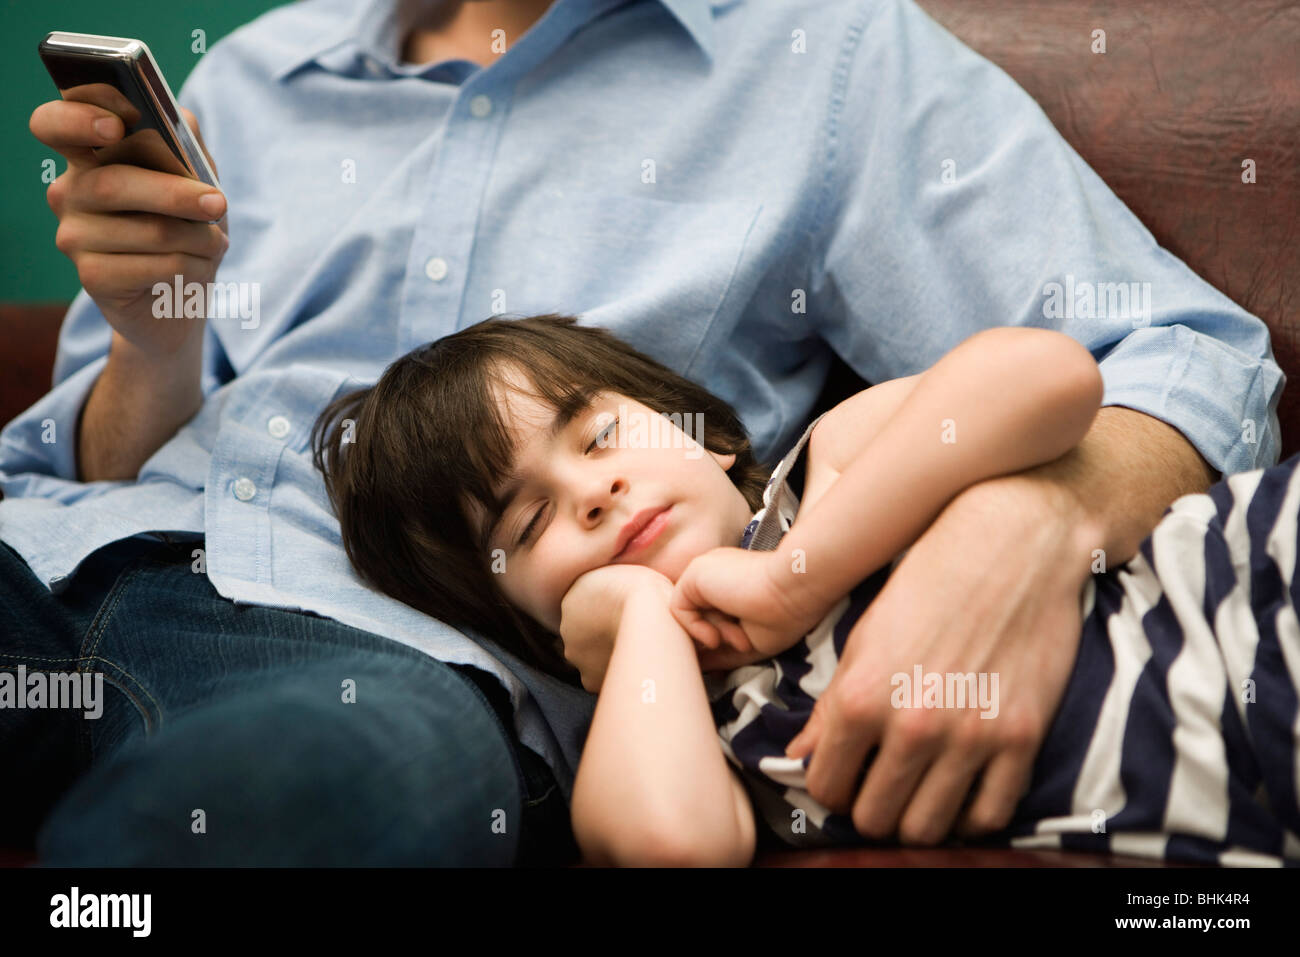 Father text messaging while son naps with head in his lap - Stock Image